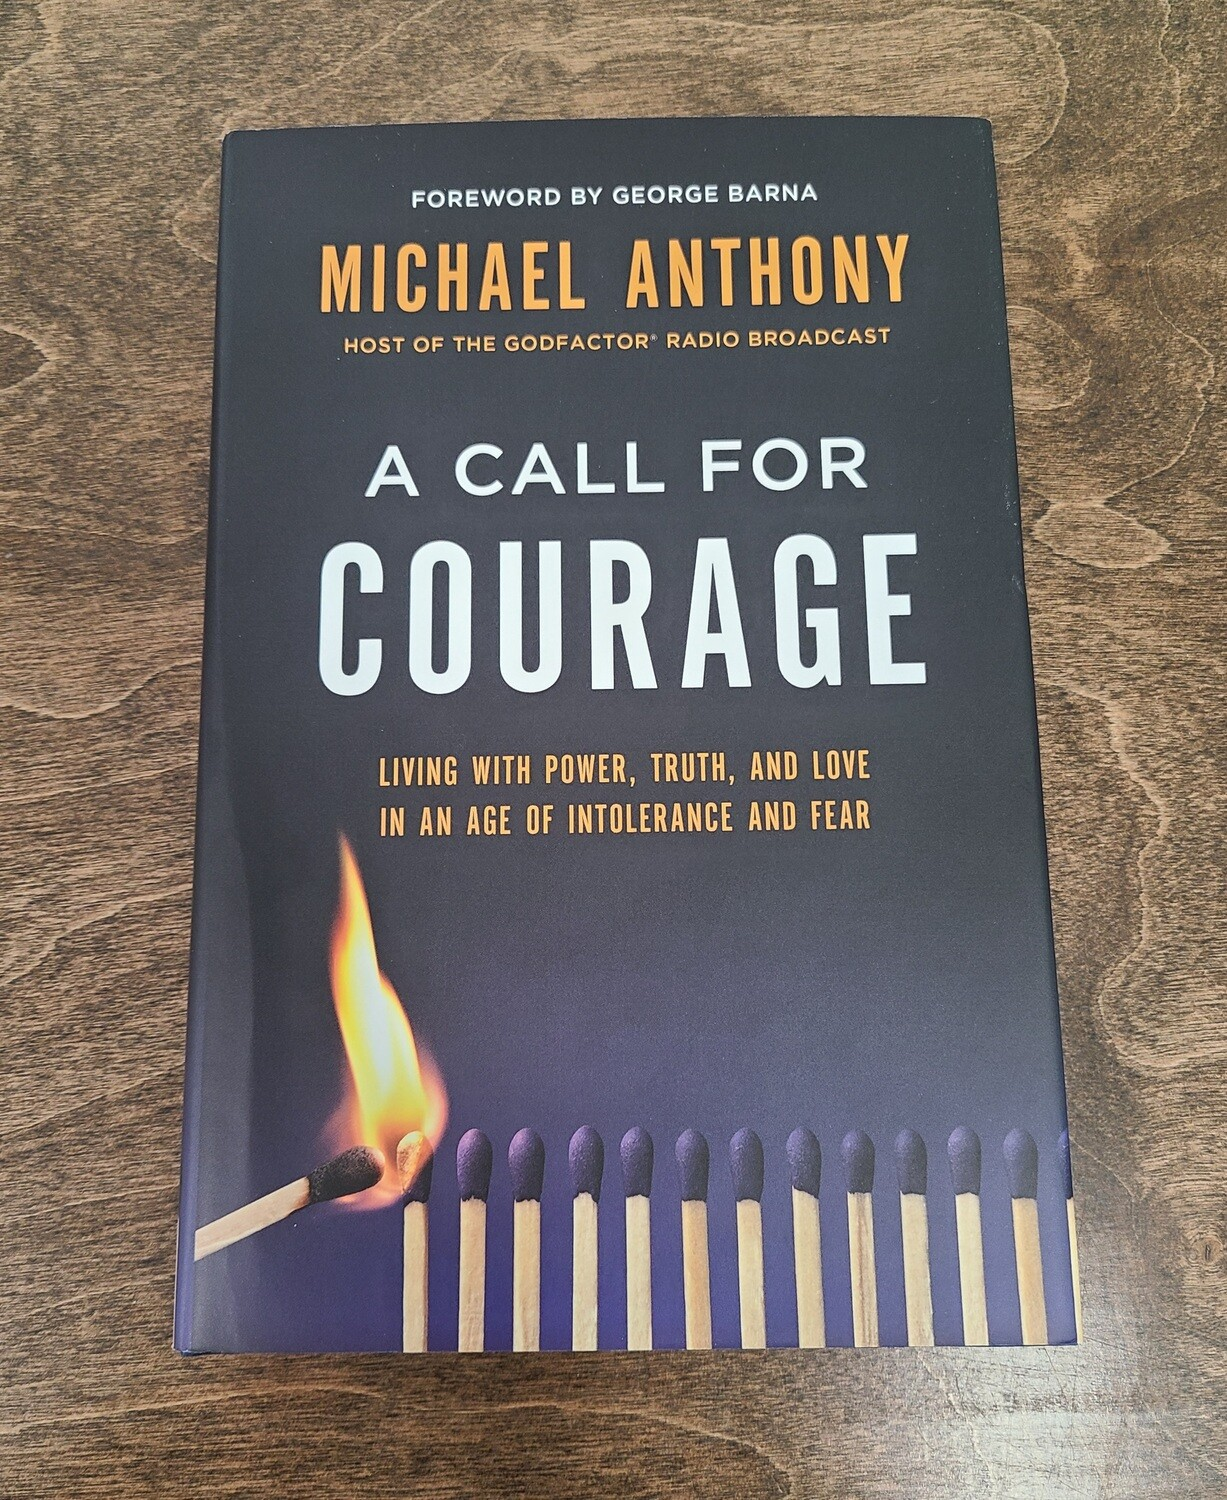 A Call for Courage by Michael Anthony